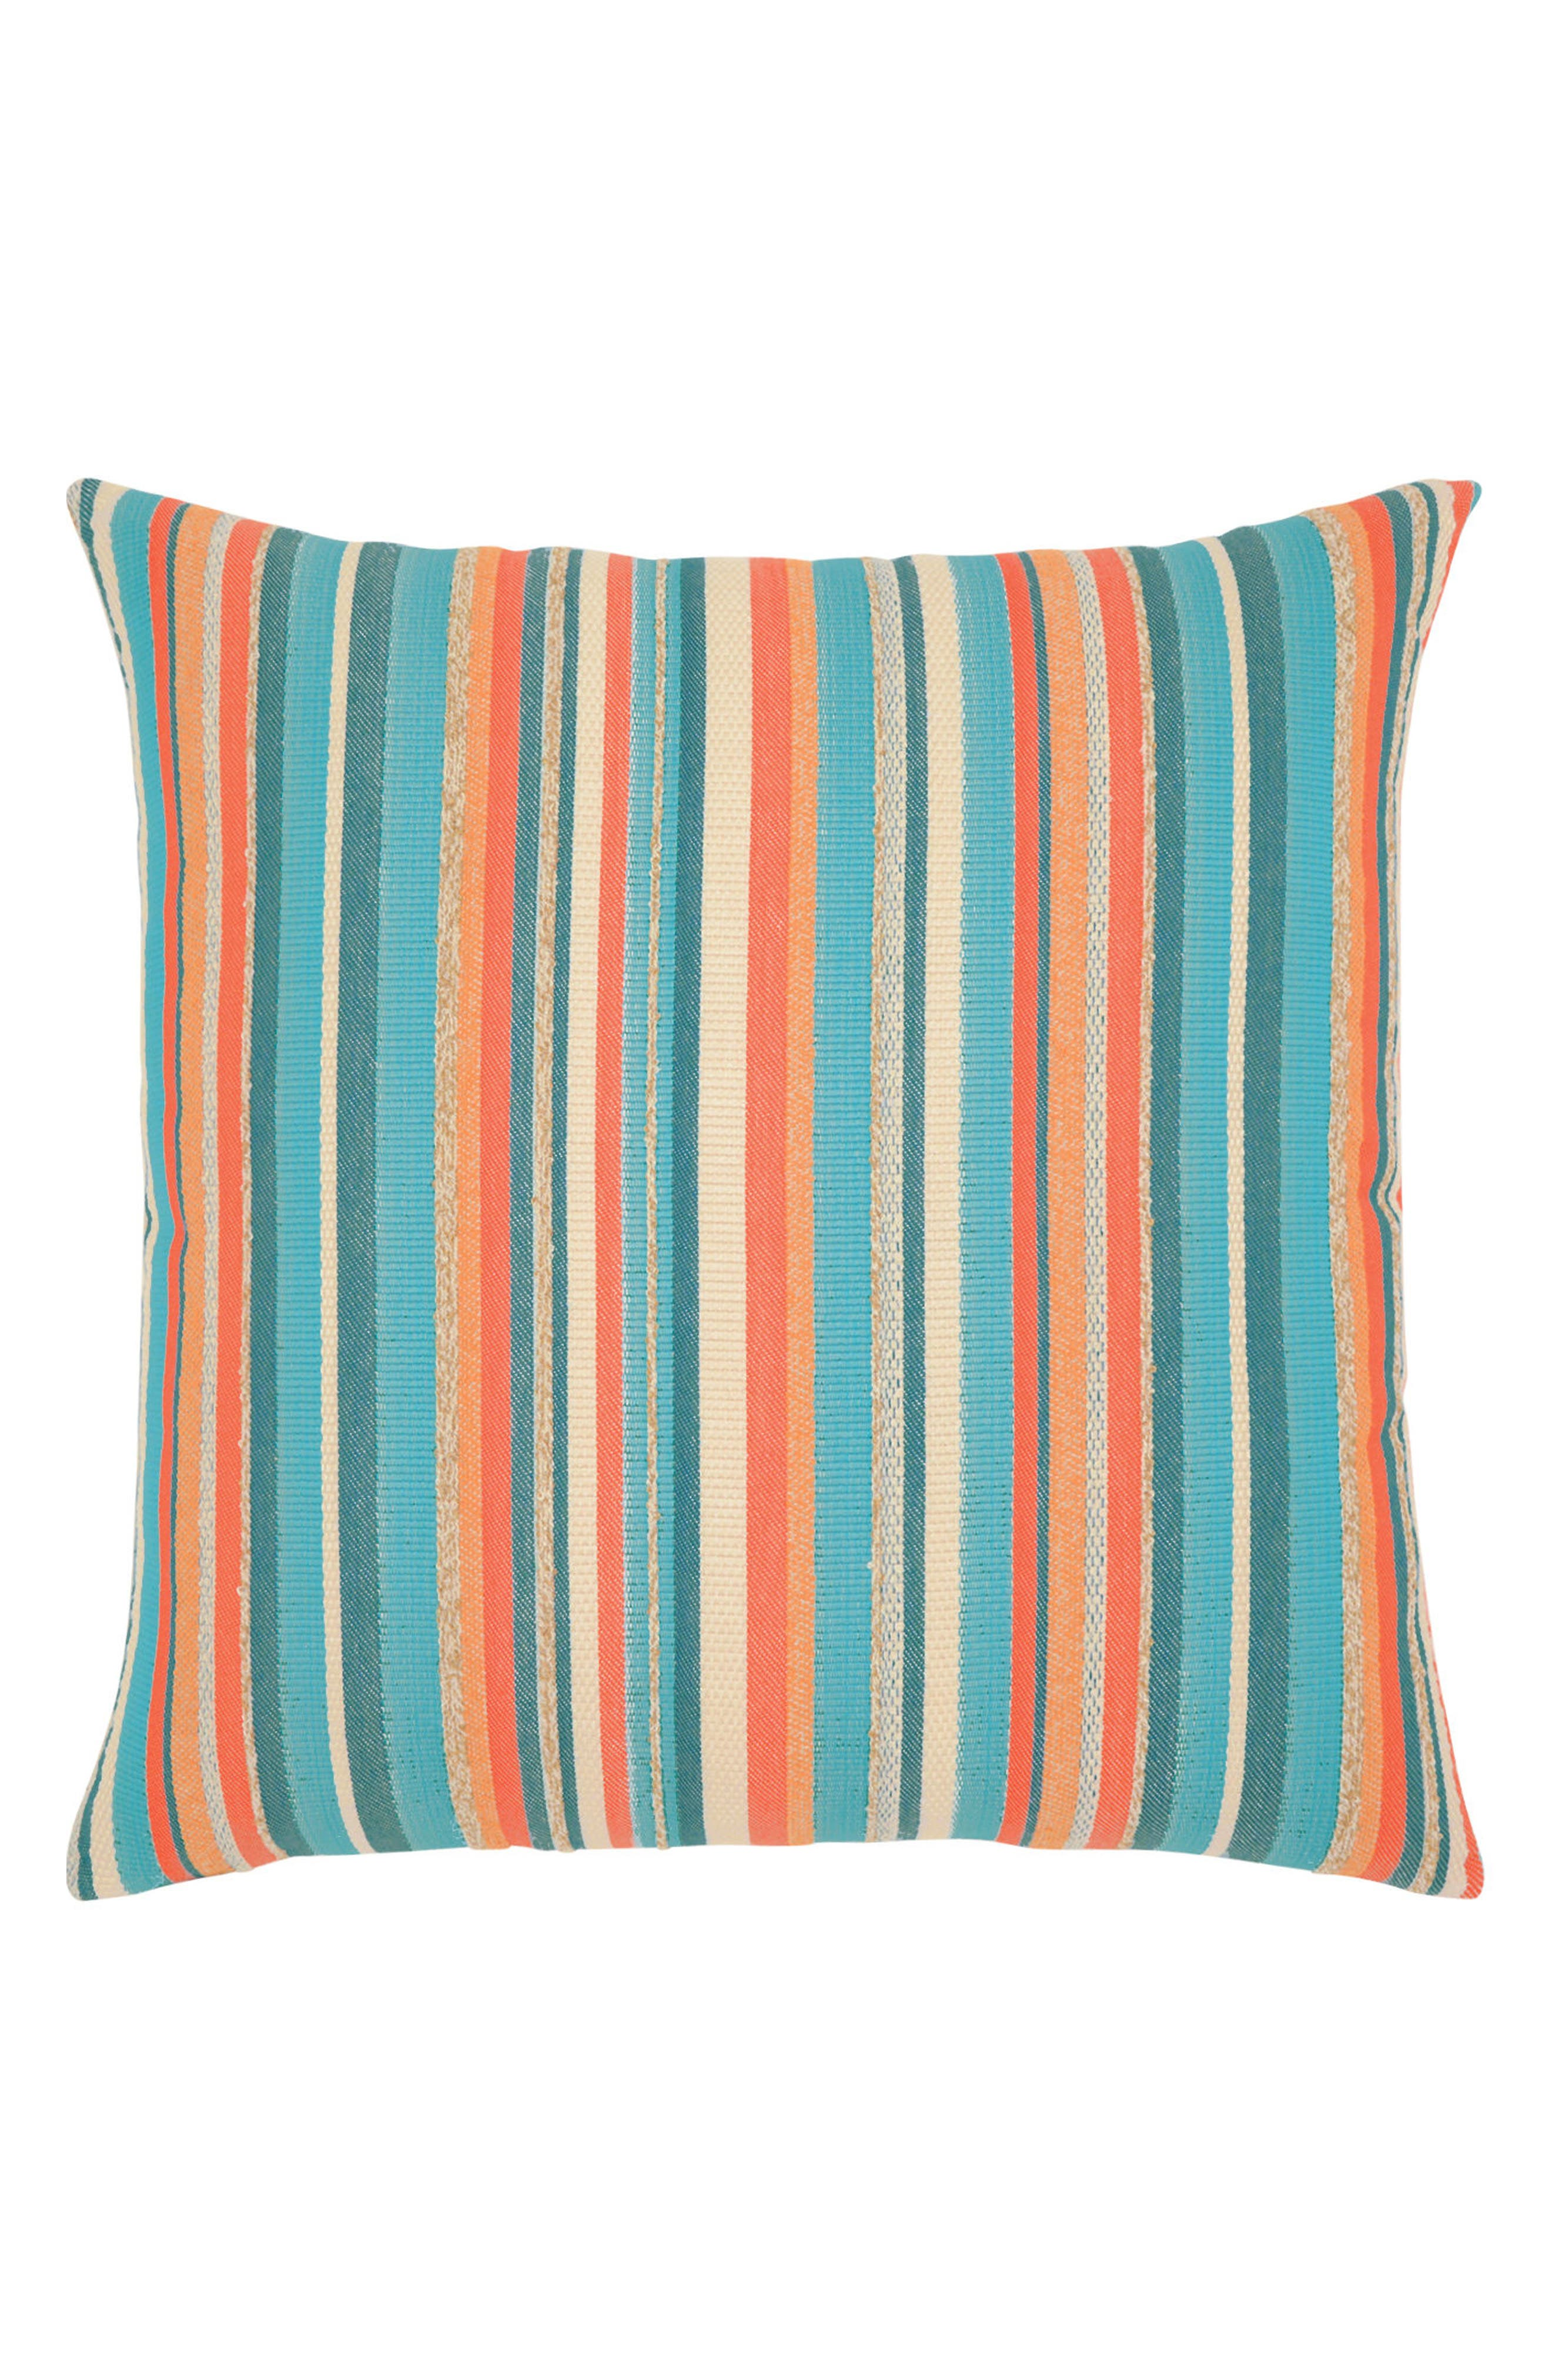 Grand Turk Stripe Indoor/Outdoor Accent Pillow,                             Main thumbnail 1, color,                             400